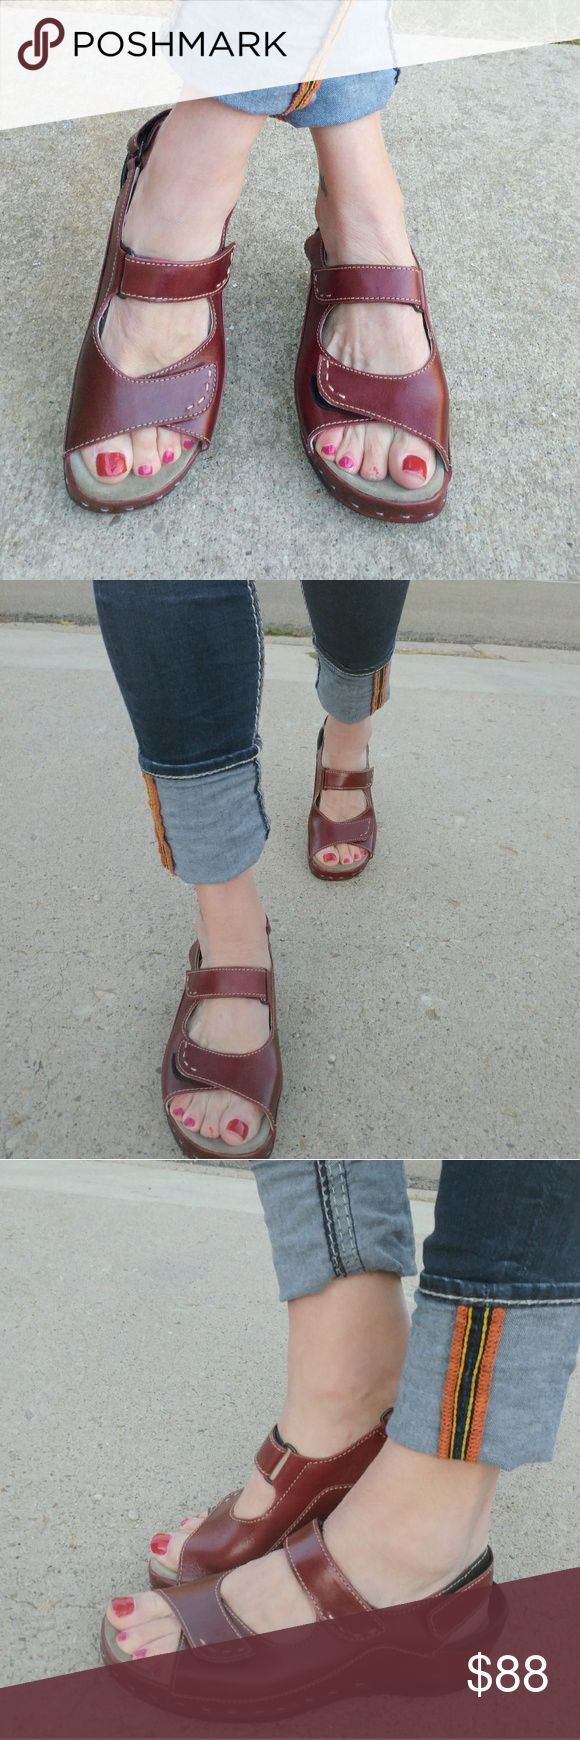 Wolky Maroon Walking Shoes Like New condition, only worn for pics.  Dark red, berry color.  Adjustable Velcro straps on top and around ankle. Very comfy. Great arch support. Open Toe. Wolky Shoes Sandals